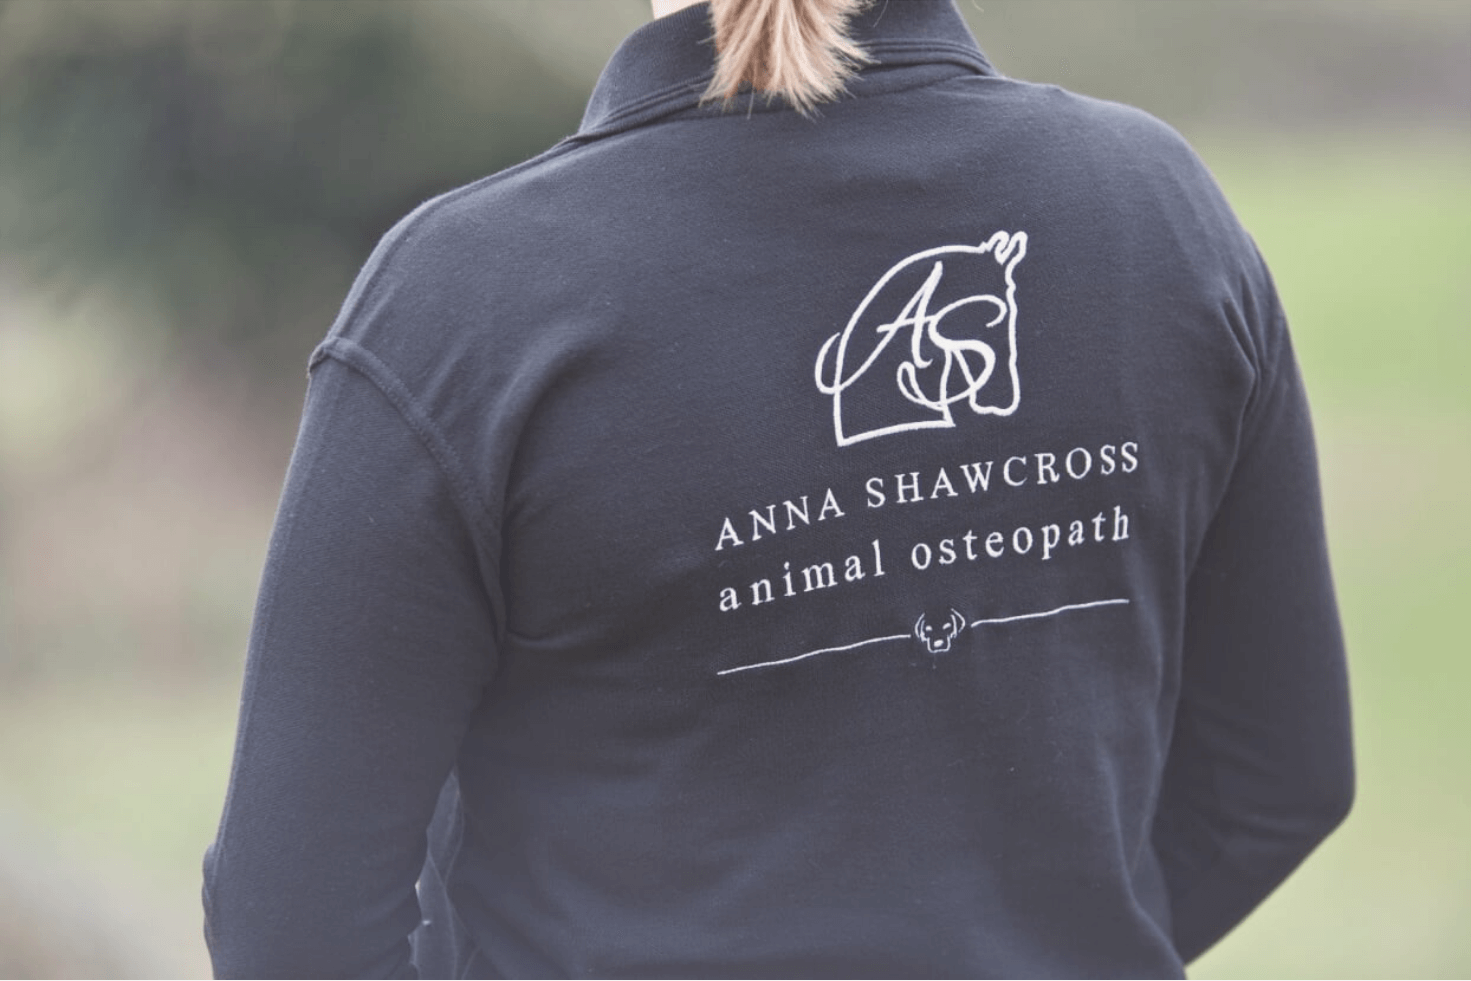 Anna Shawcross Animal Osteopath in West Sussex